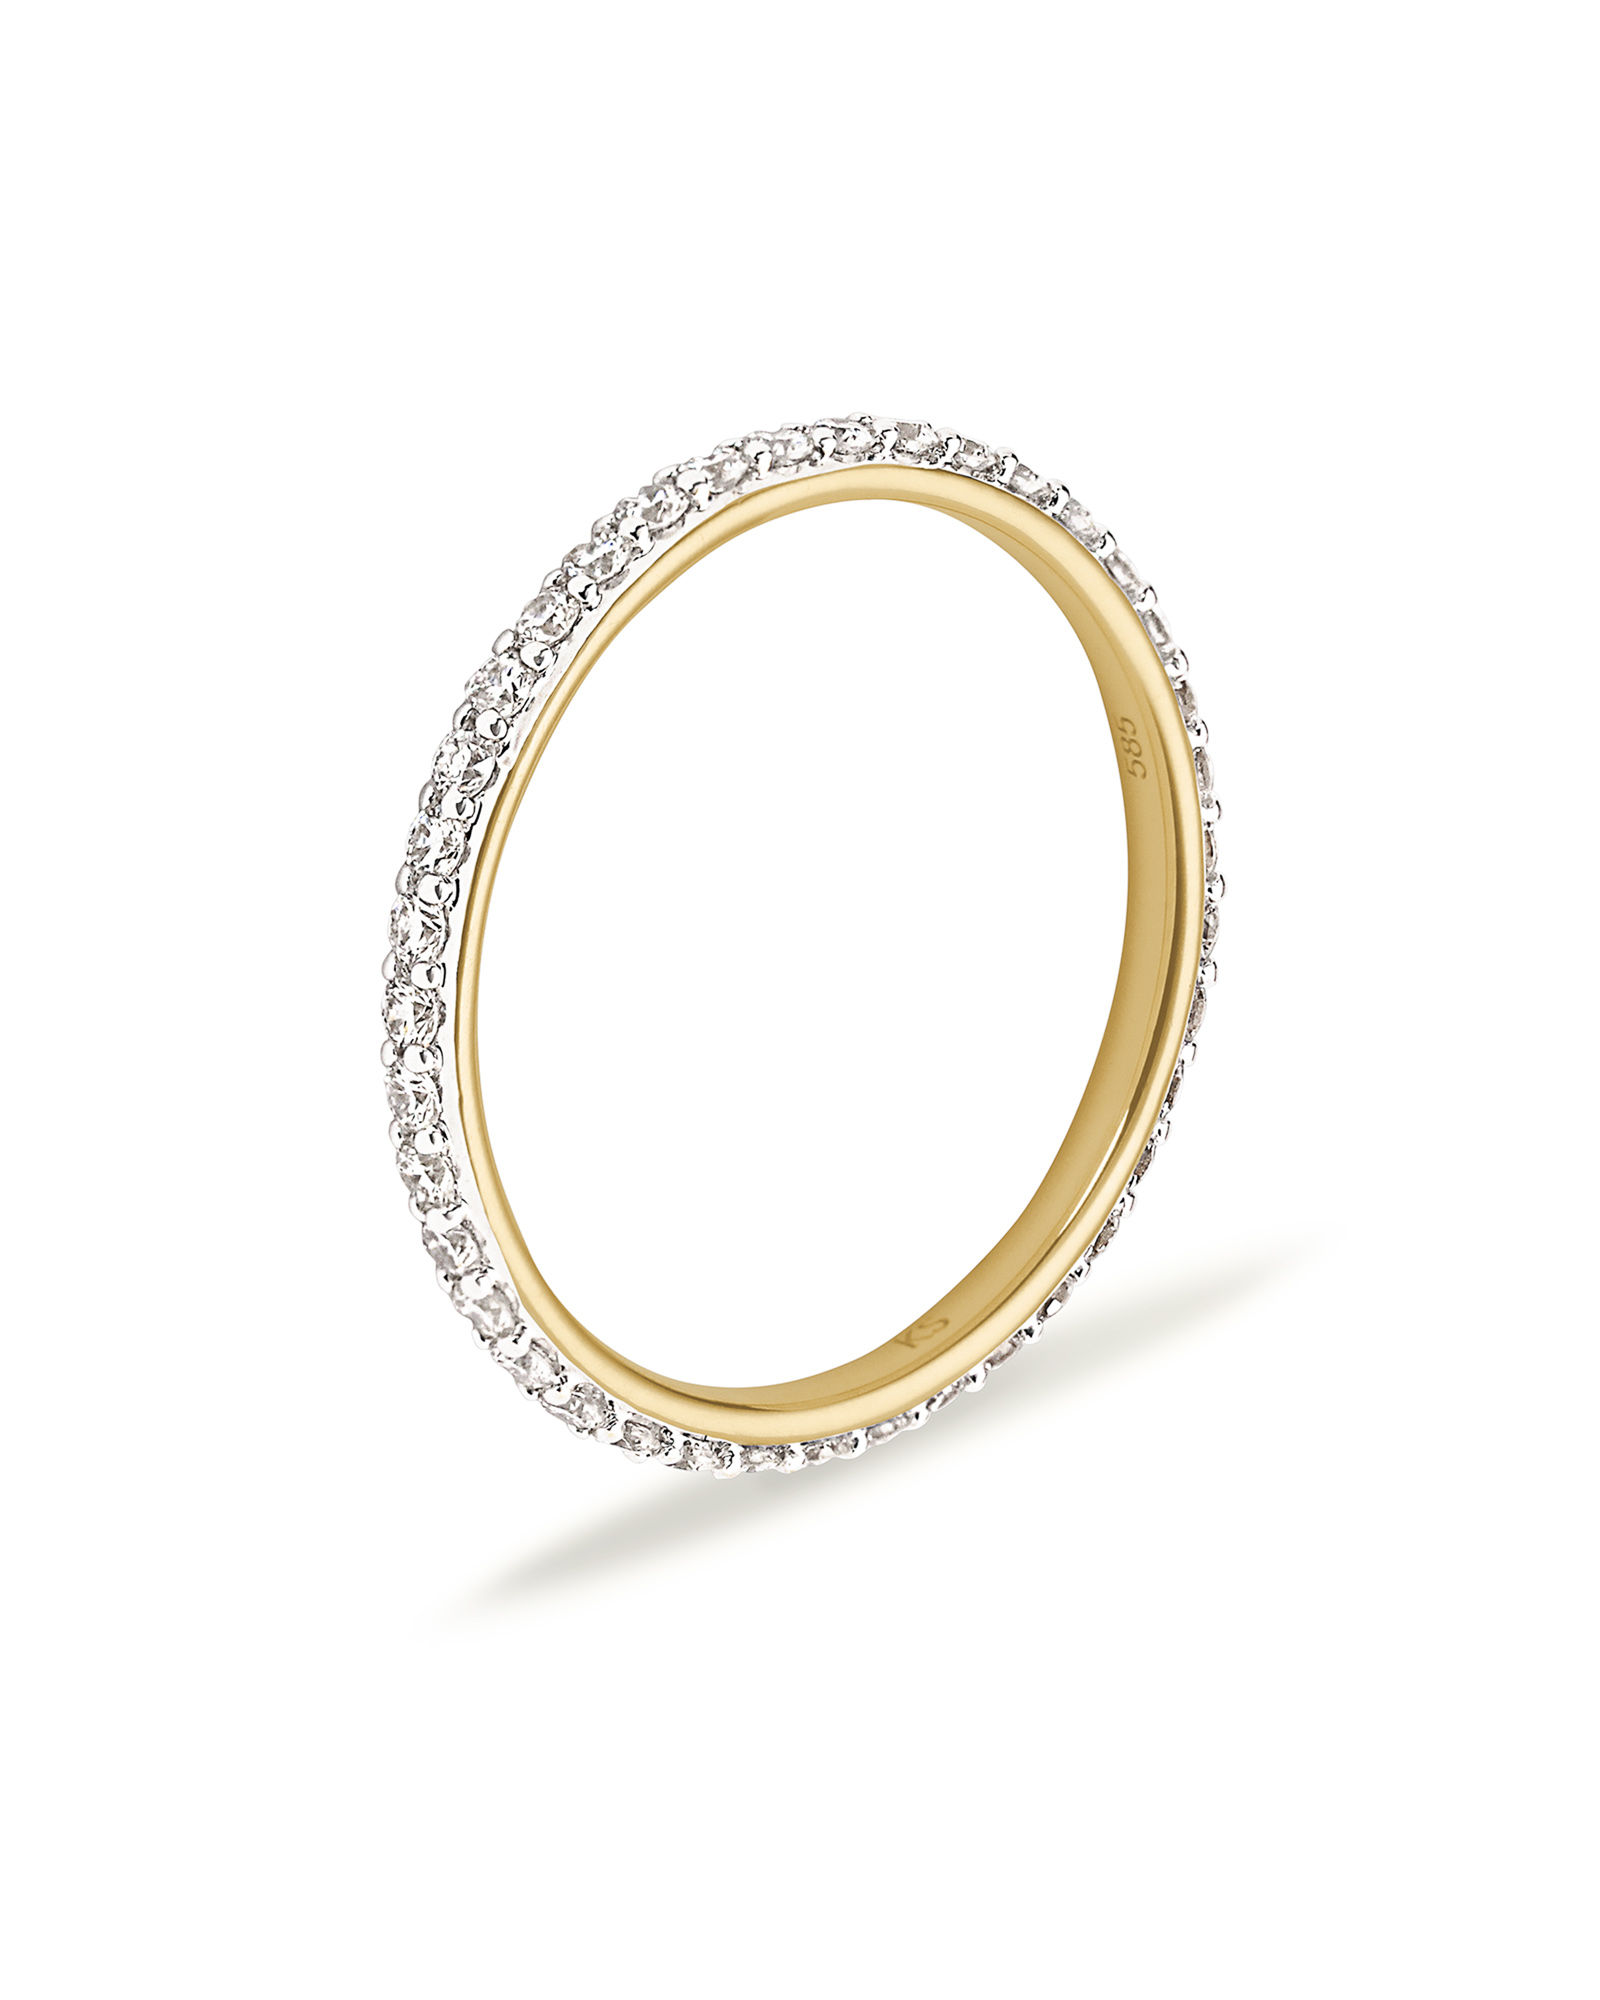 Marilyn 14K Yellow Gold Band Ring in White Diamond